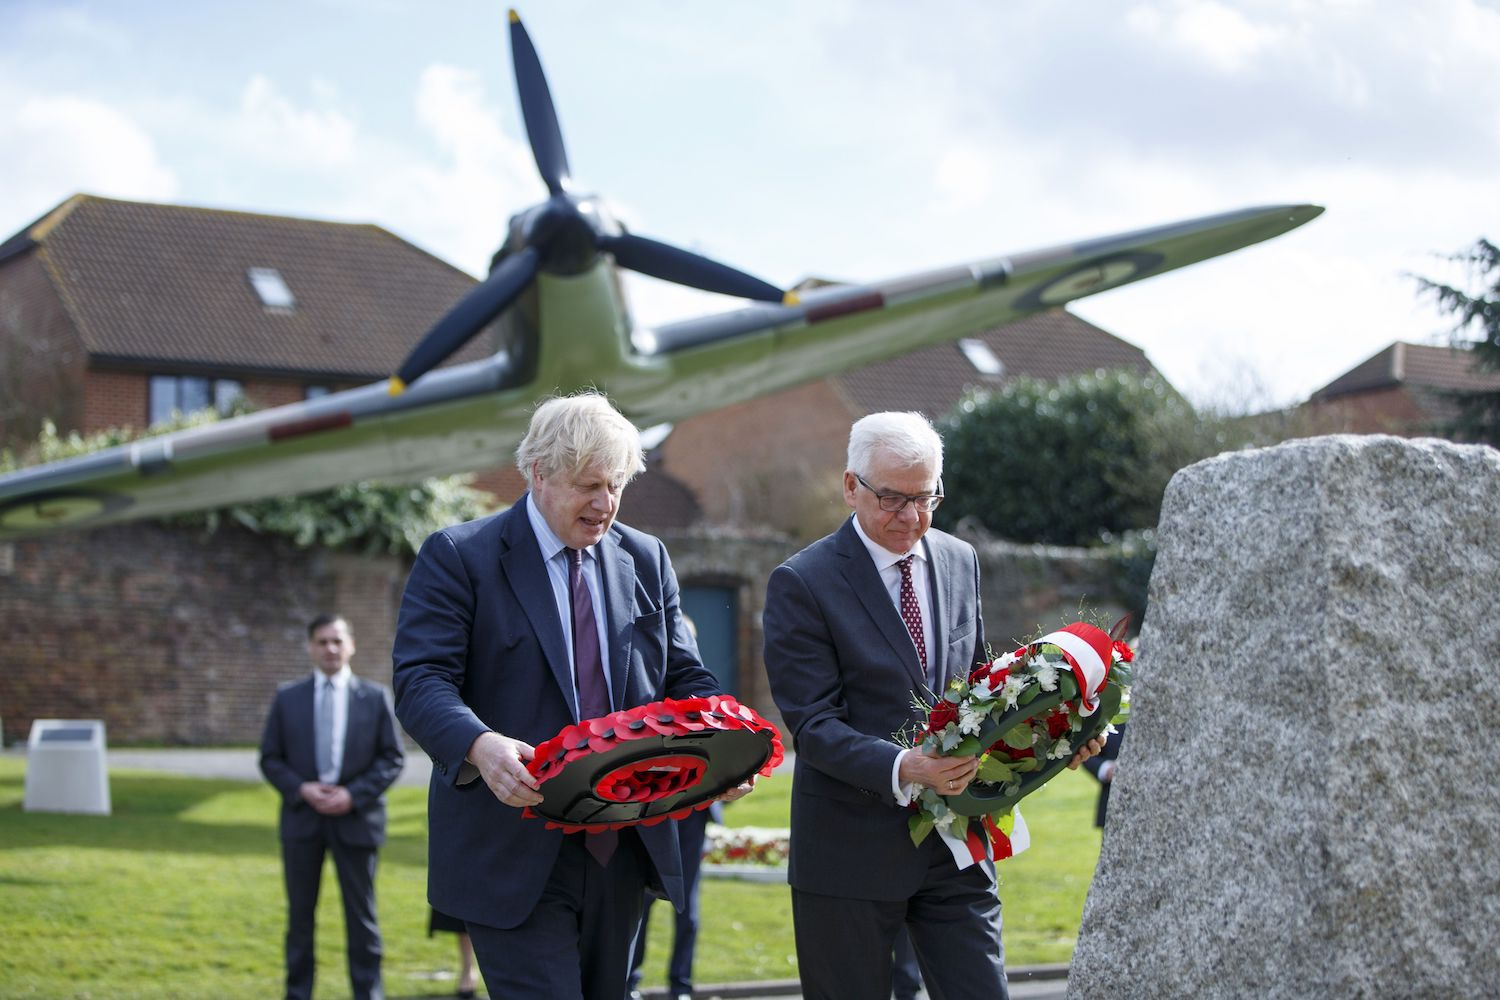 Britain's Foreign Secretary Boris Johnson (l) and his Polish counterpart Jacek Czaputowicz lay wreaths during a visit to a Battle of Britain bunker in Uxbridge, west London on March 16, 2018.   / AFP PHOTO / POOL / Tolga Akmen        (Photo credit should read TOLGA AKMEN/AFP/Getty Images)